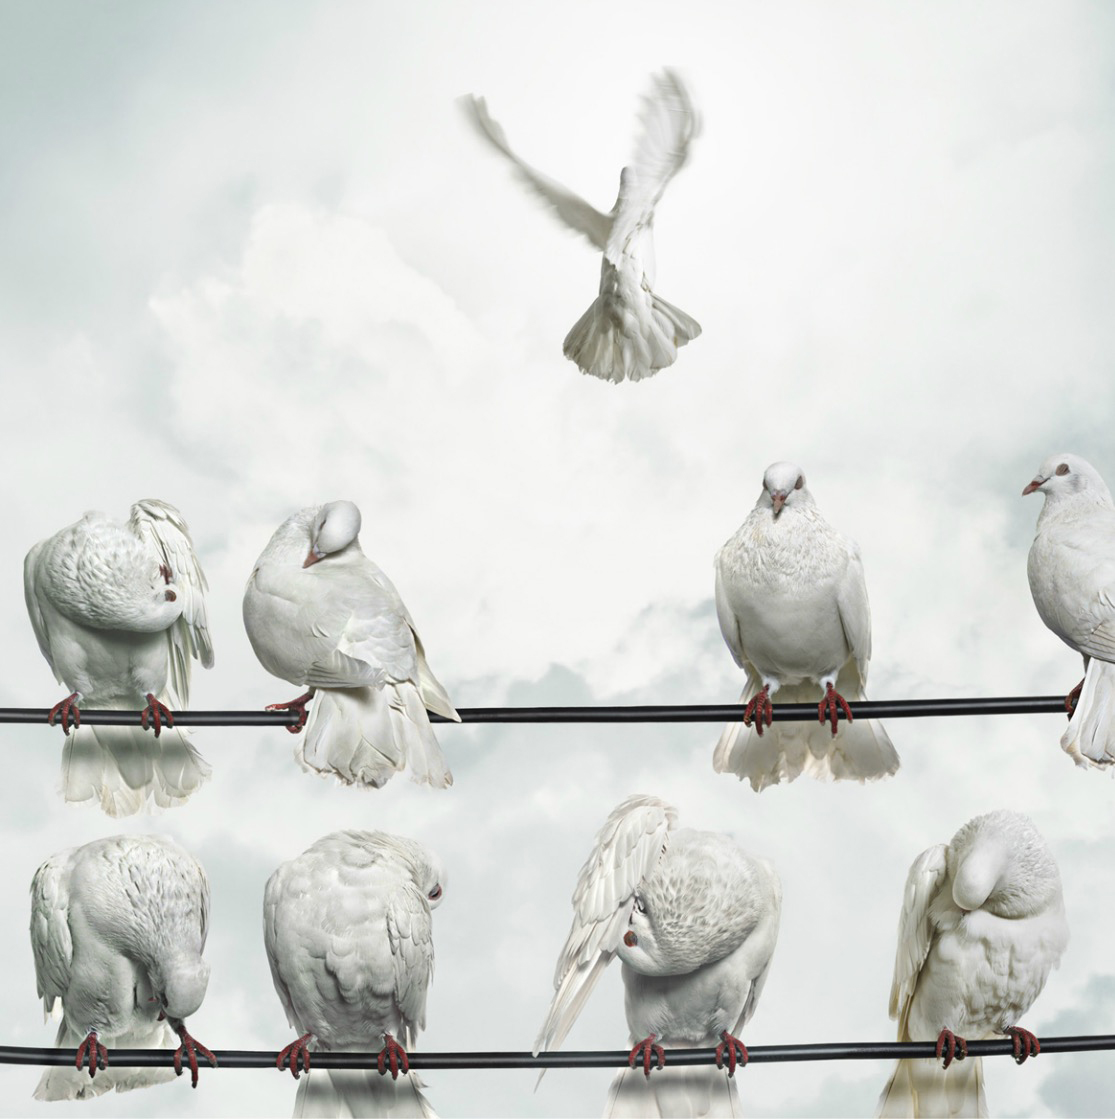 Doves perched on wires, one flying away (Digital Composite) Doves (Columbidae) Copyright Gandee Vasan